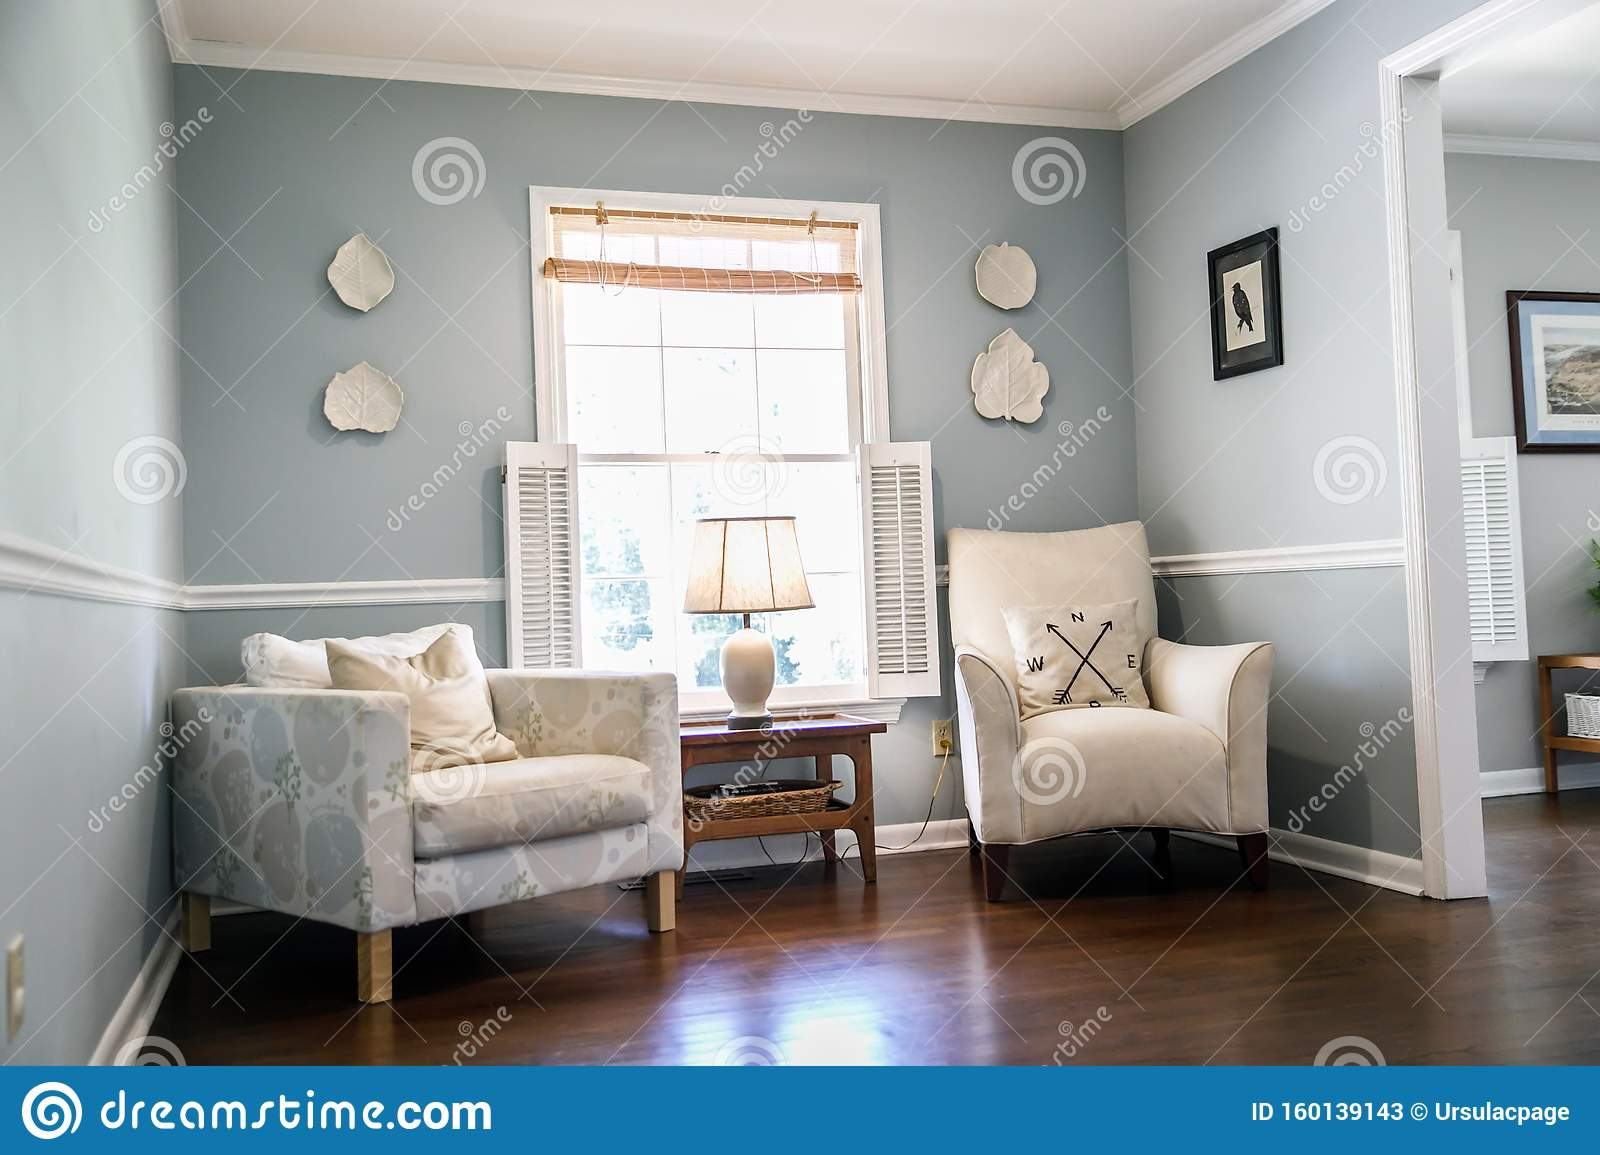 Light Blue Sitting Room With Two Cream Colored Chairs And Decorative Plates On The Wall Stock Image Image Of Decor Entertain 160139143